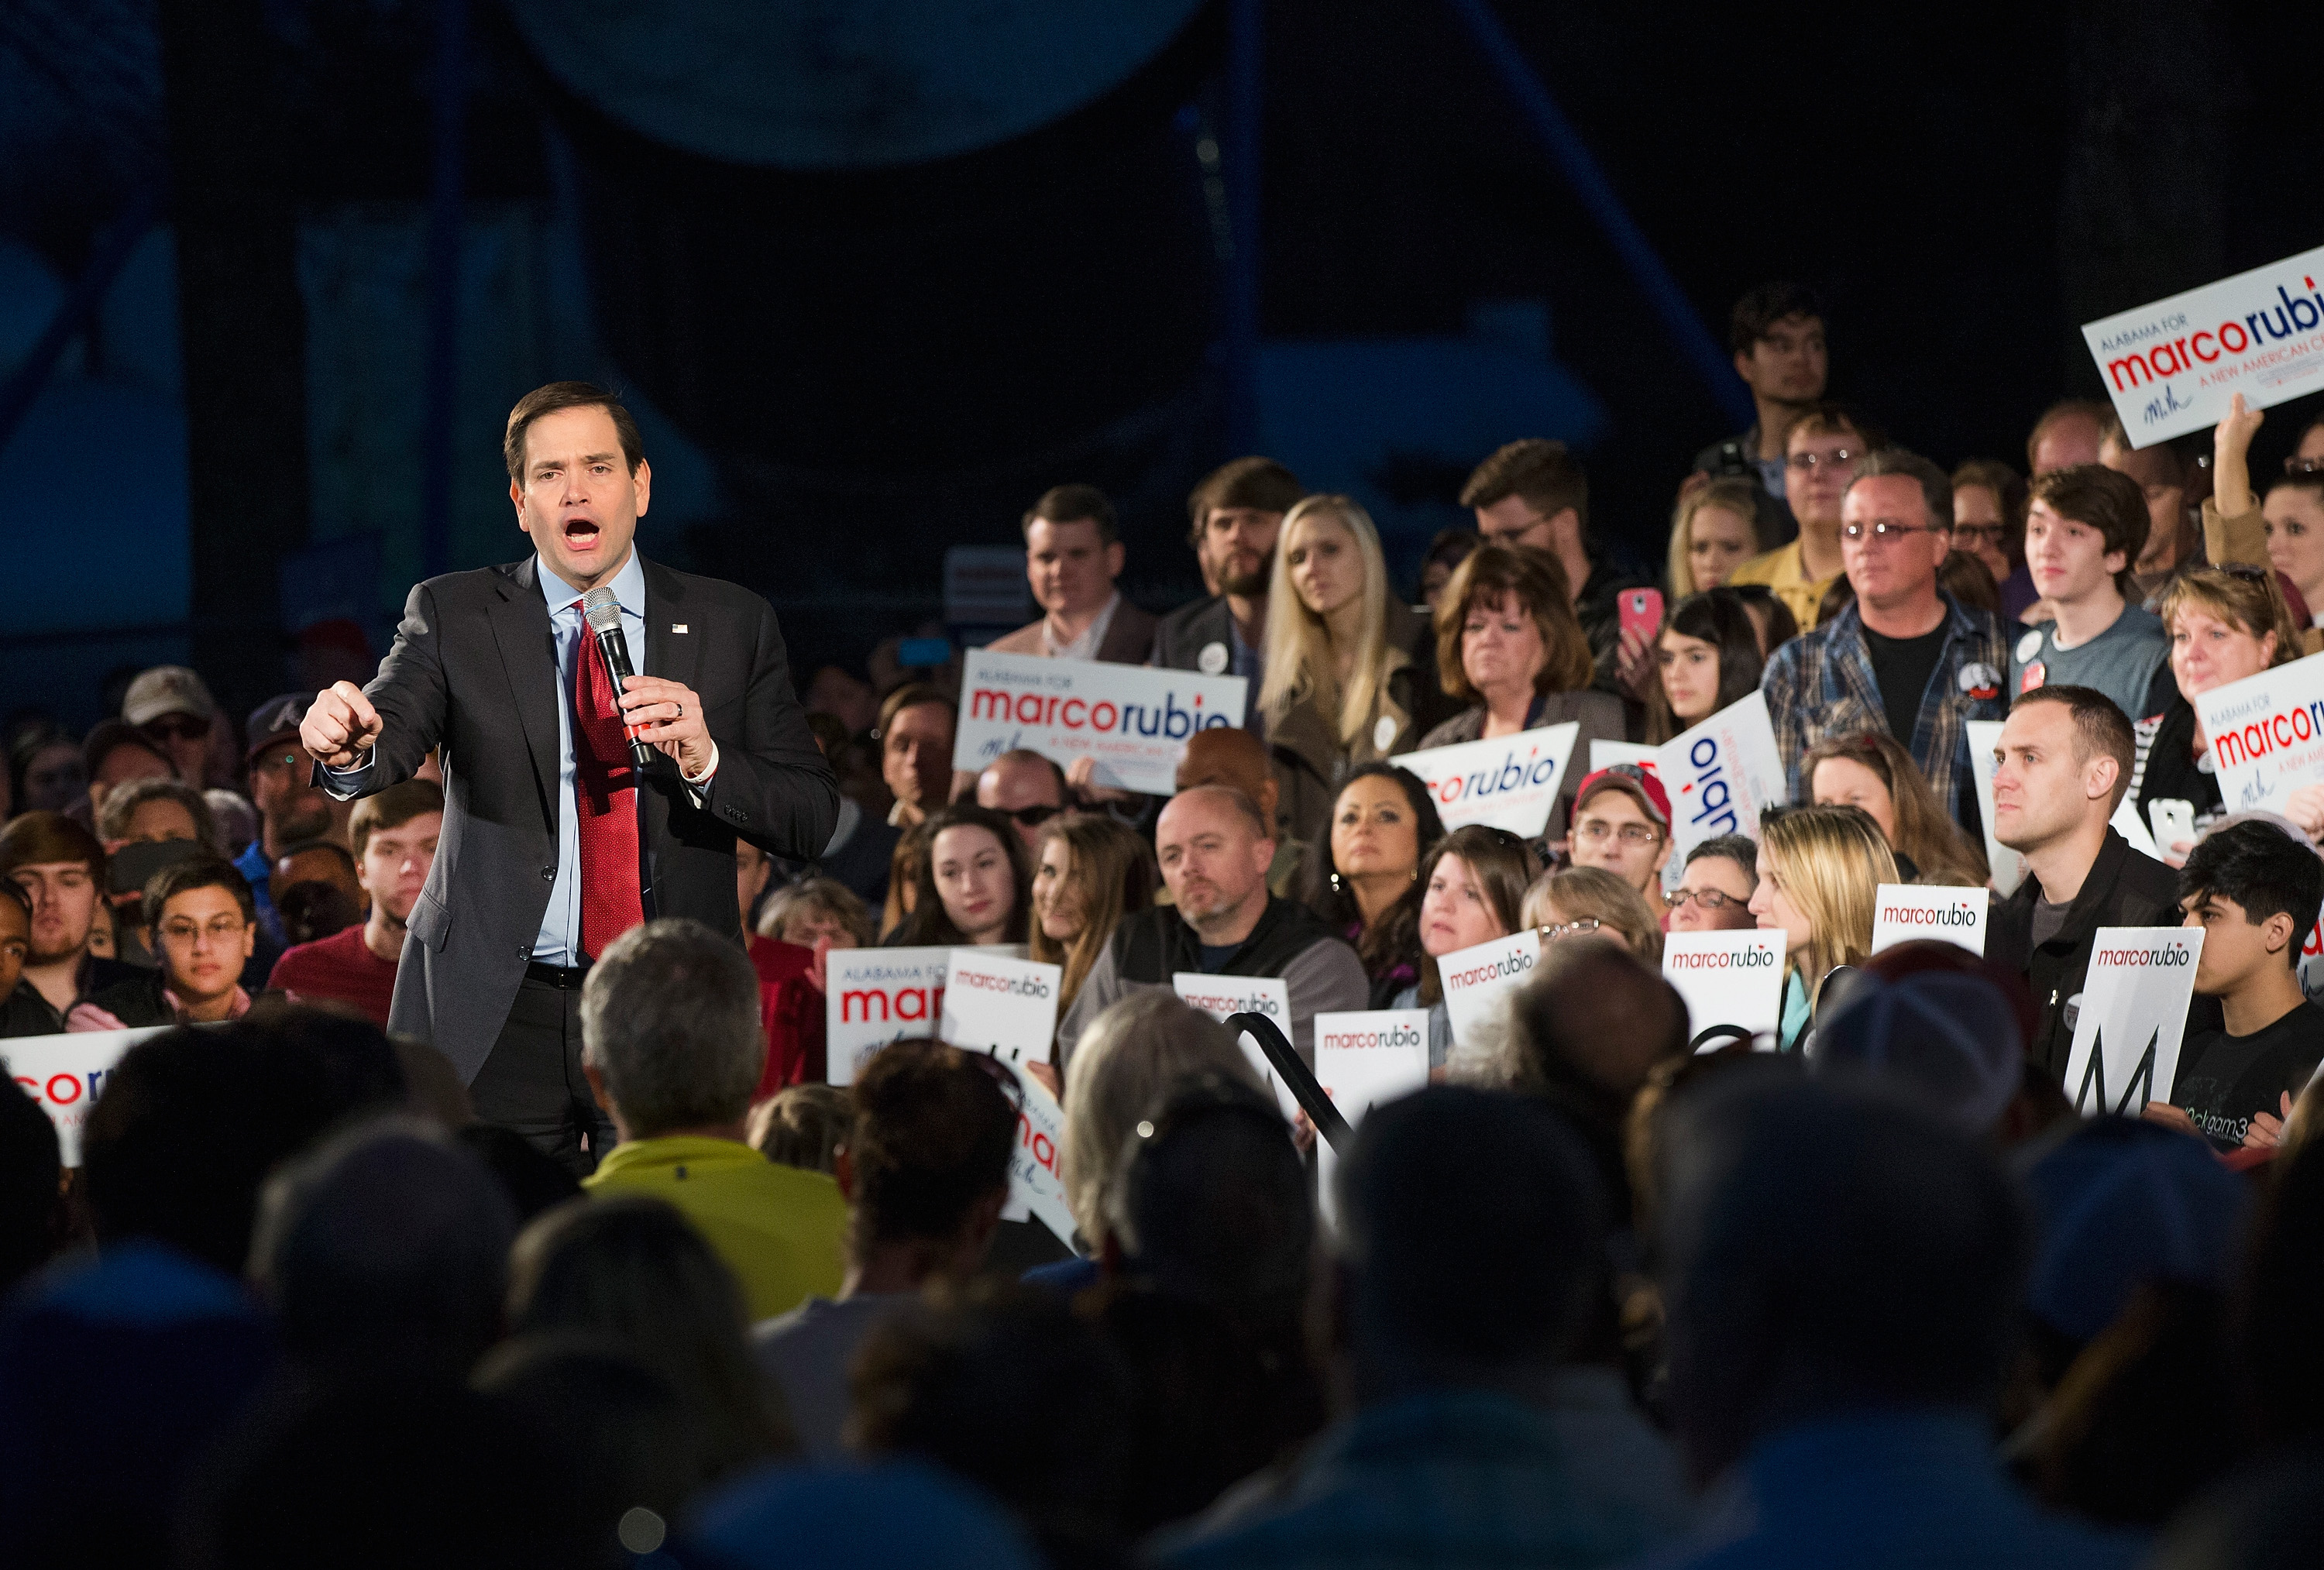 Marco Rubio Campaigns In Alabama Ahead Of Super Tuesday